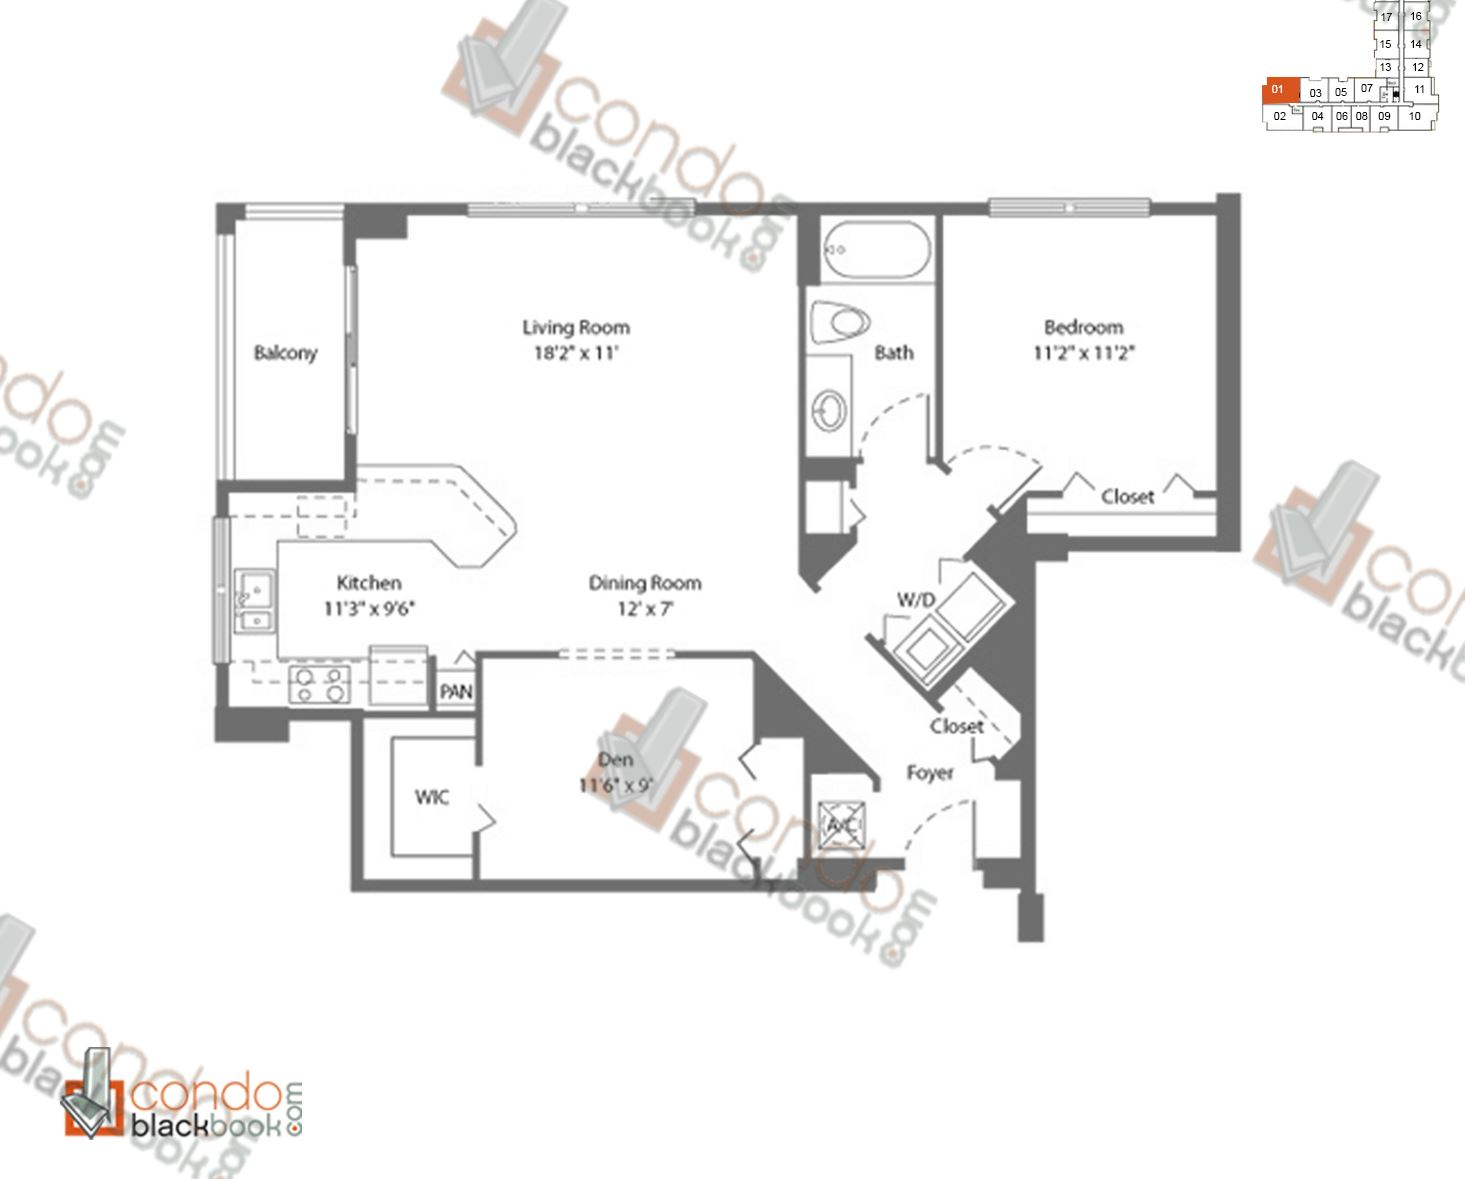 Floor plan for Cite Edgewater Miami, model A4, line 01, 1/1+DEN bedrooms, 964 sq ft